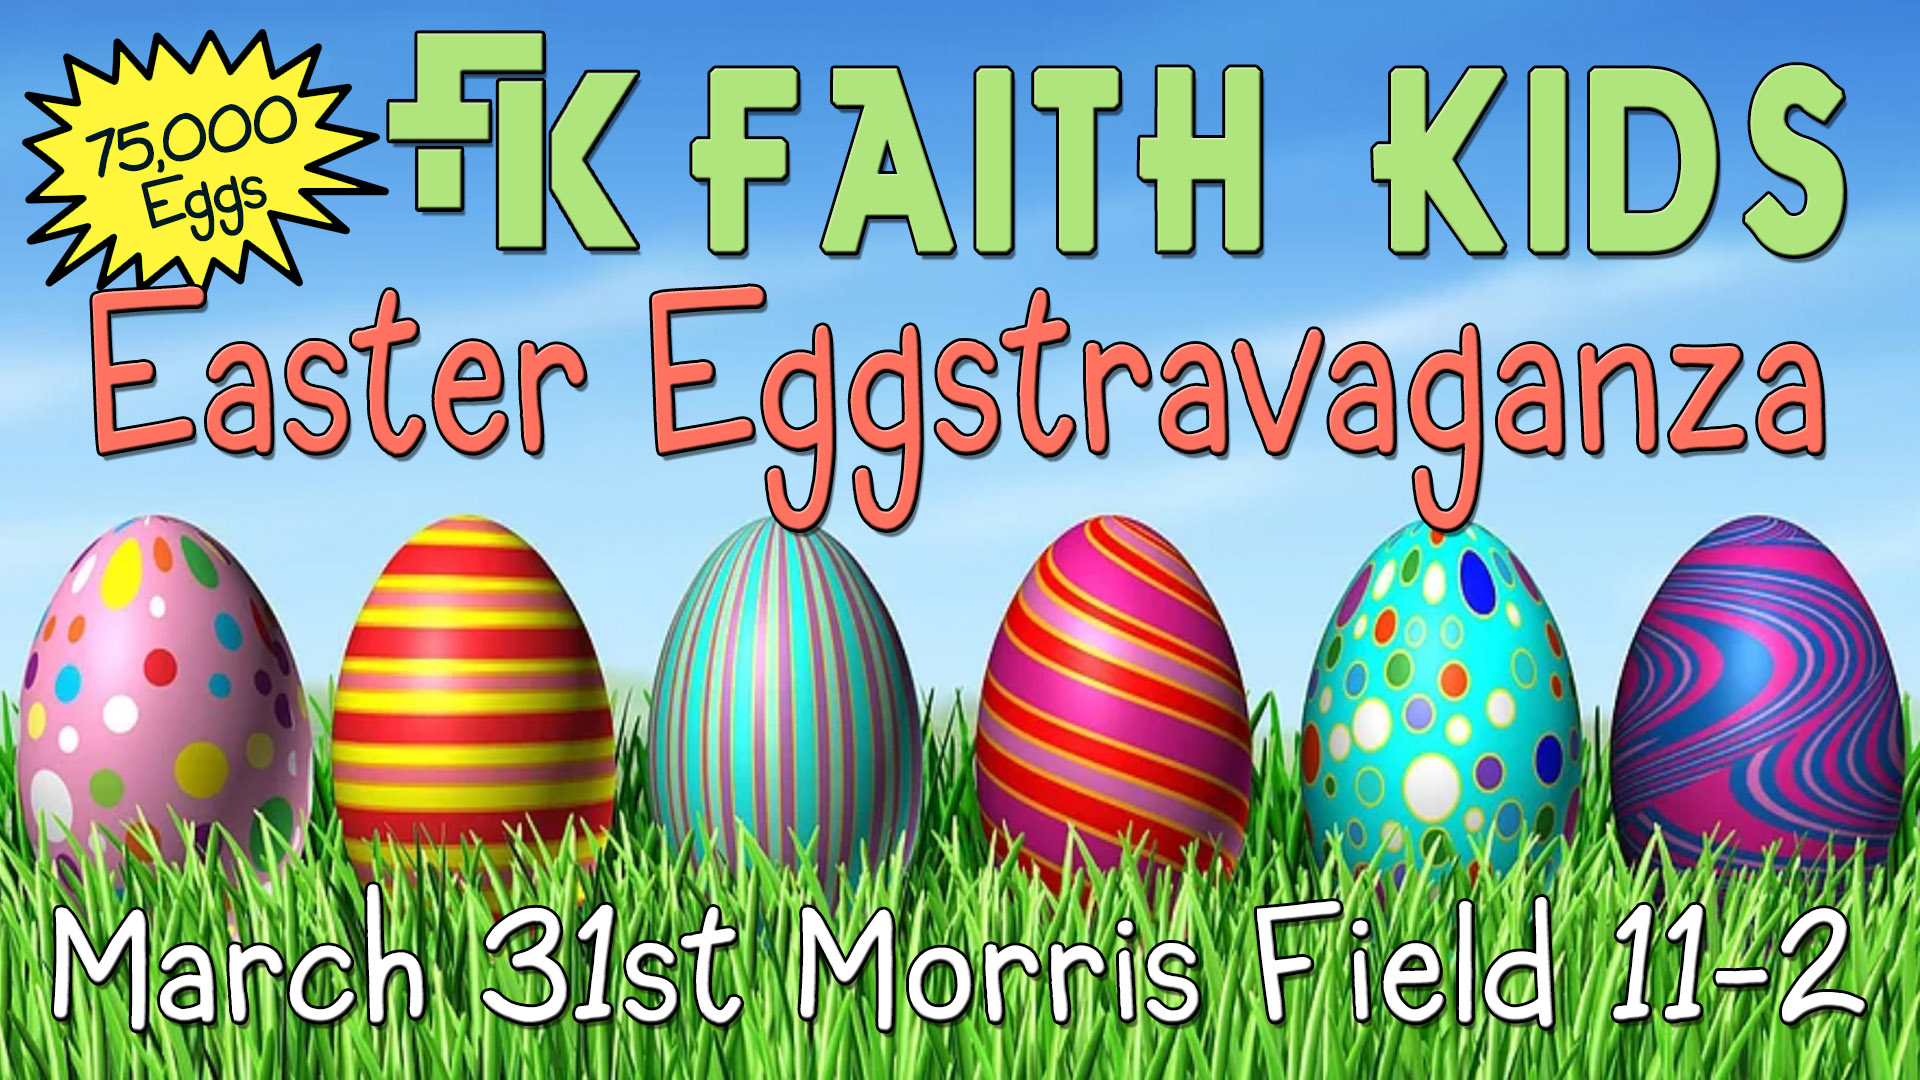 Come to Morris Field Saturday March 31st for a great day of egg hunts, food, jumpies, and much much more.